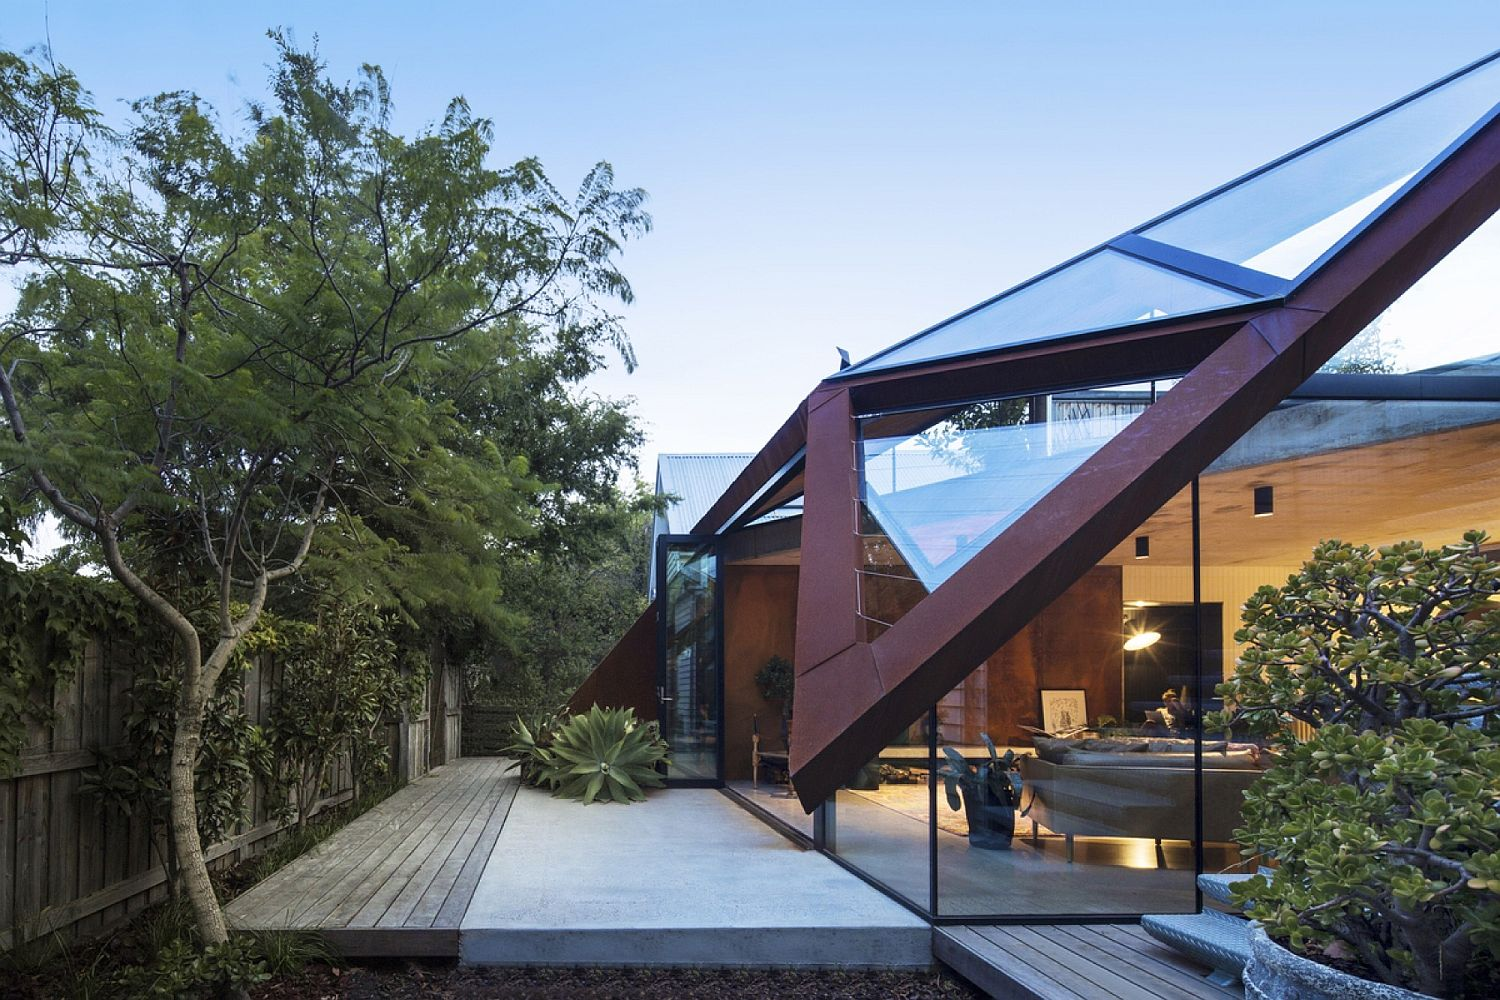 Geometrc design of the glass and metal roof